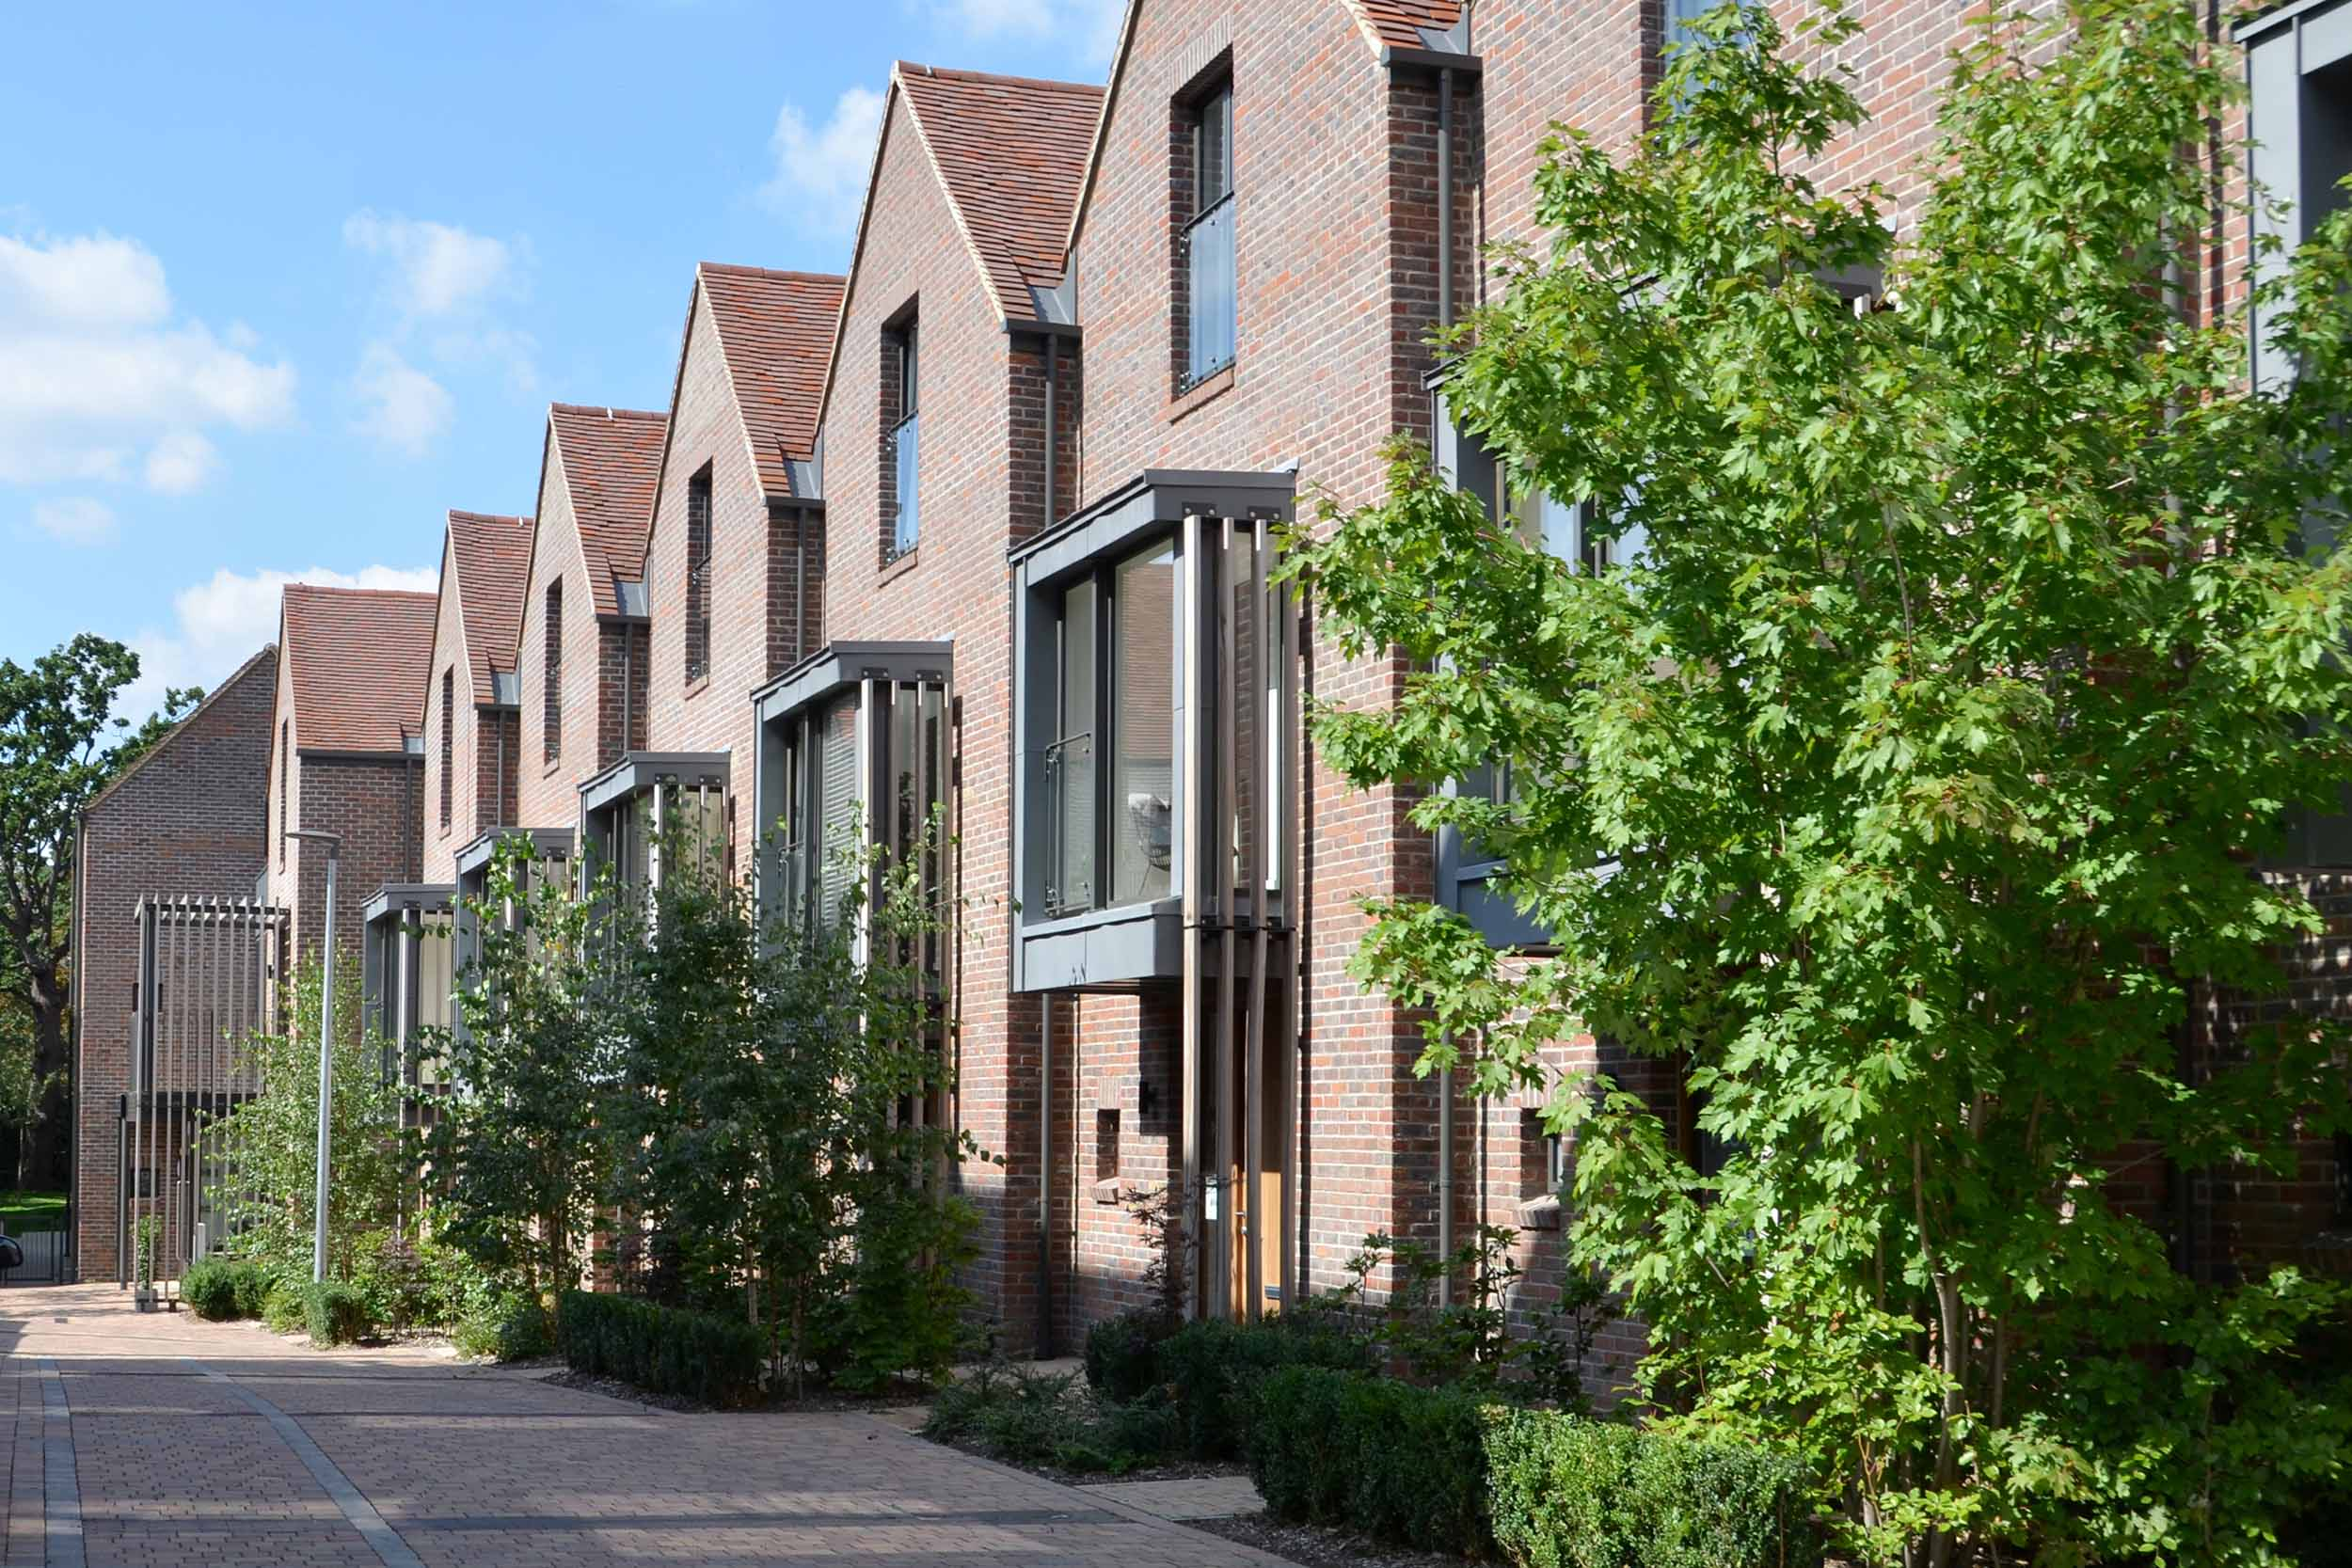 Mews Housing at  Woodside Square .